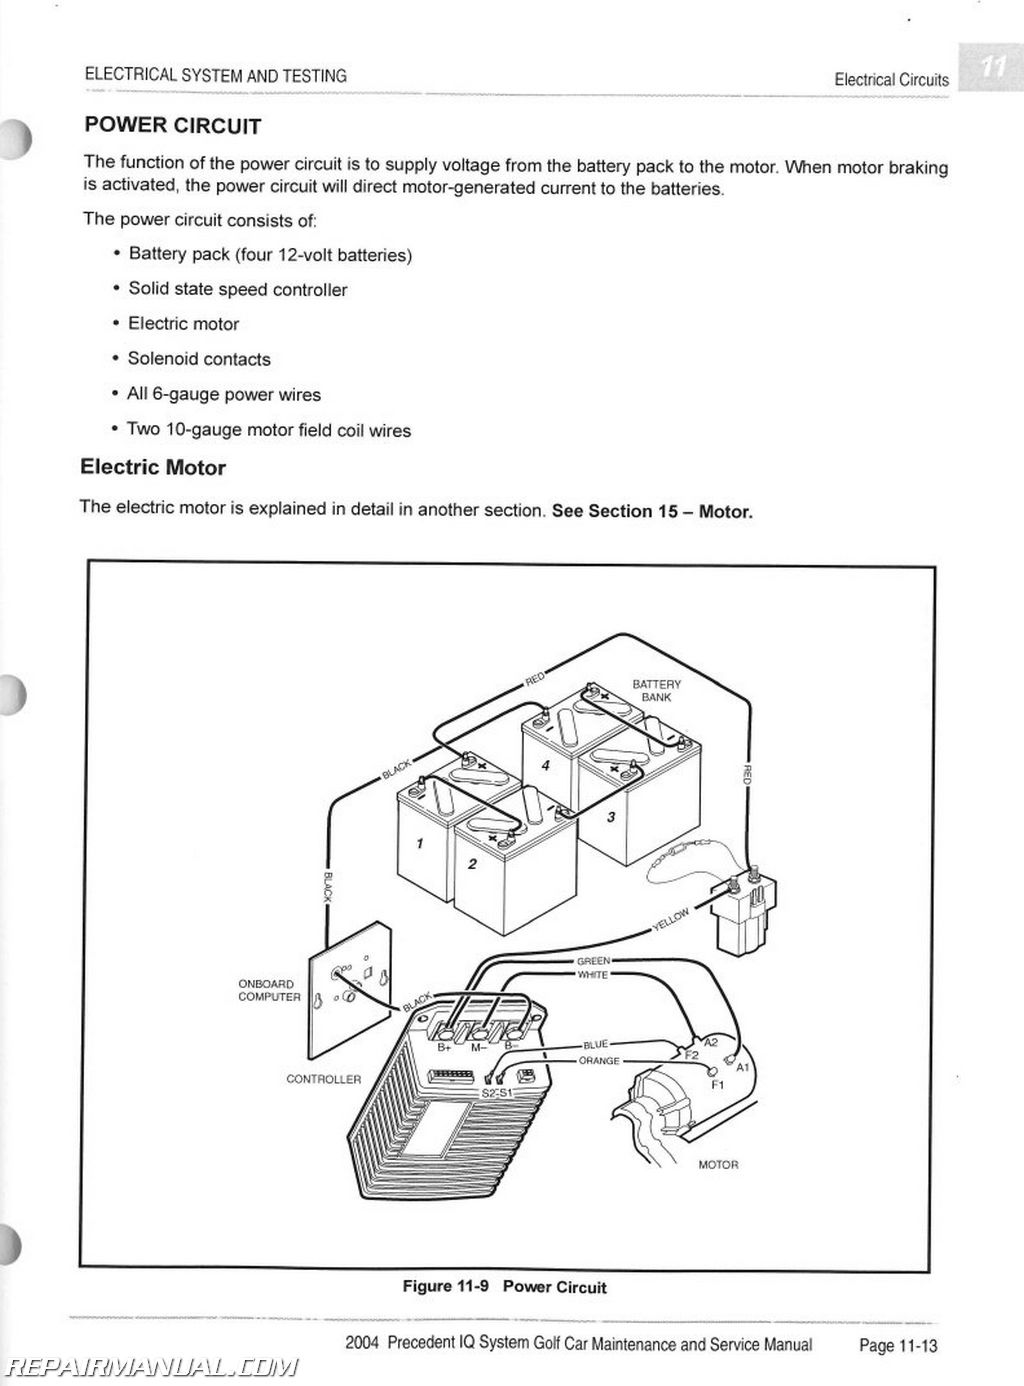 Golf Cart Electrical System Diagram Wiring Schematics American Pride 2004 Club Car Precedent Iq Electric Vehicle Ignition